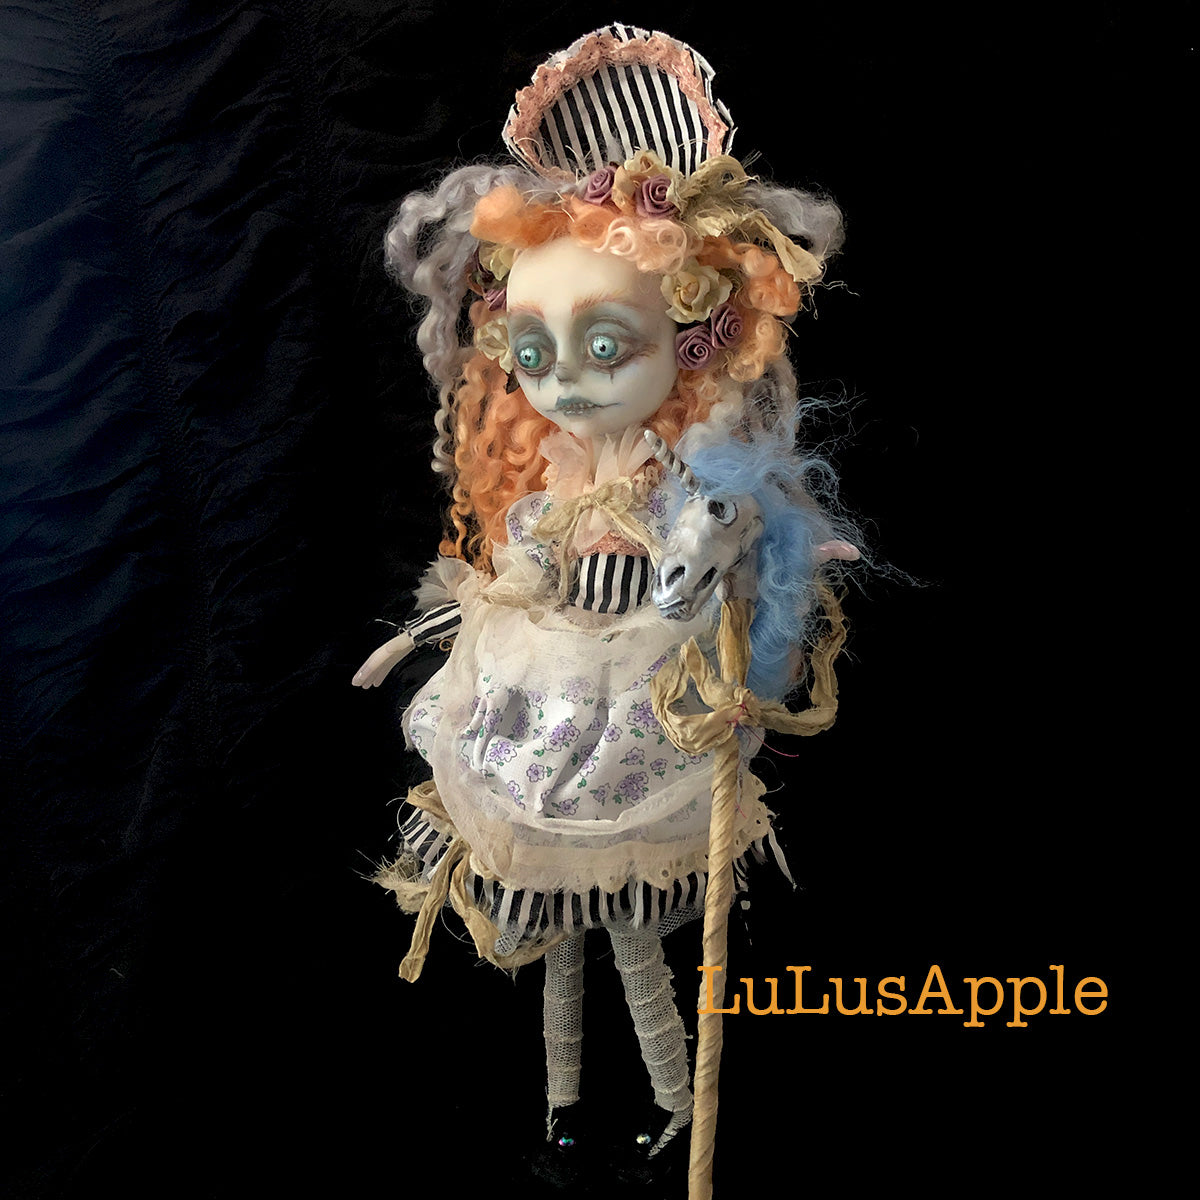 Ghastly Gertie Funeral Girl OOAK Art Doll LuLusApple